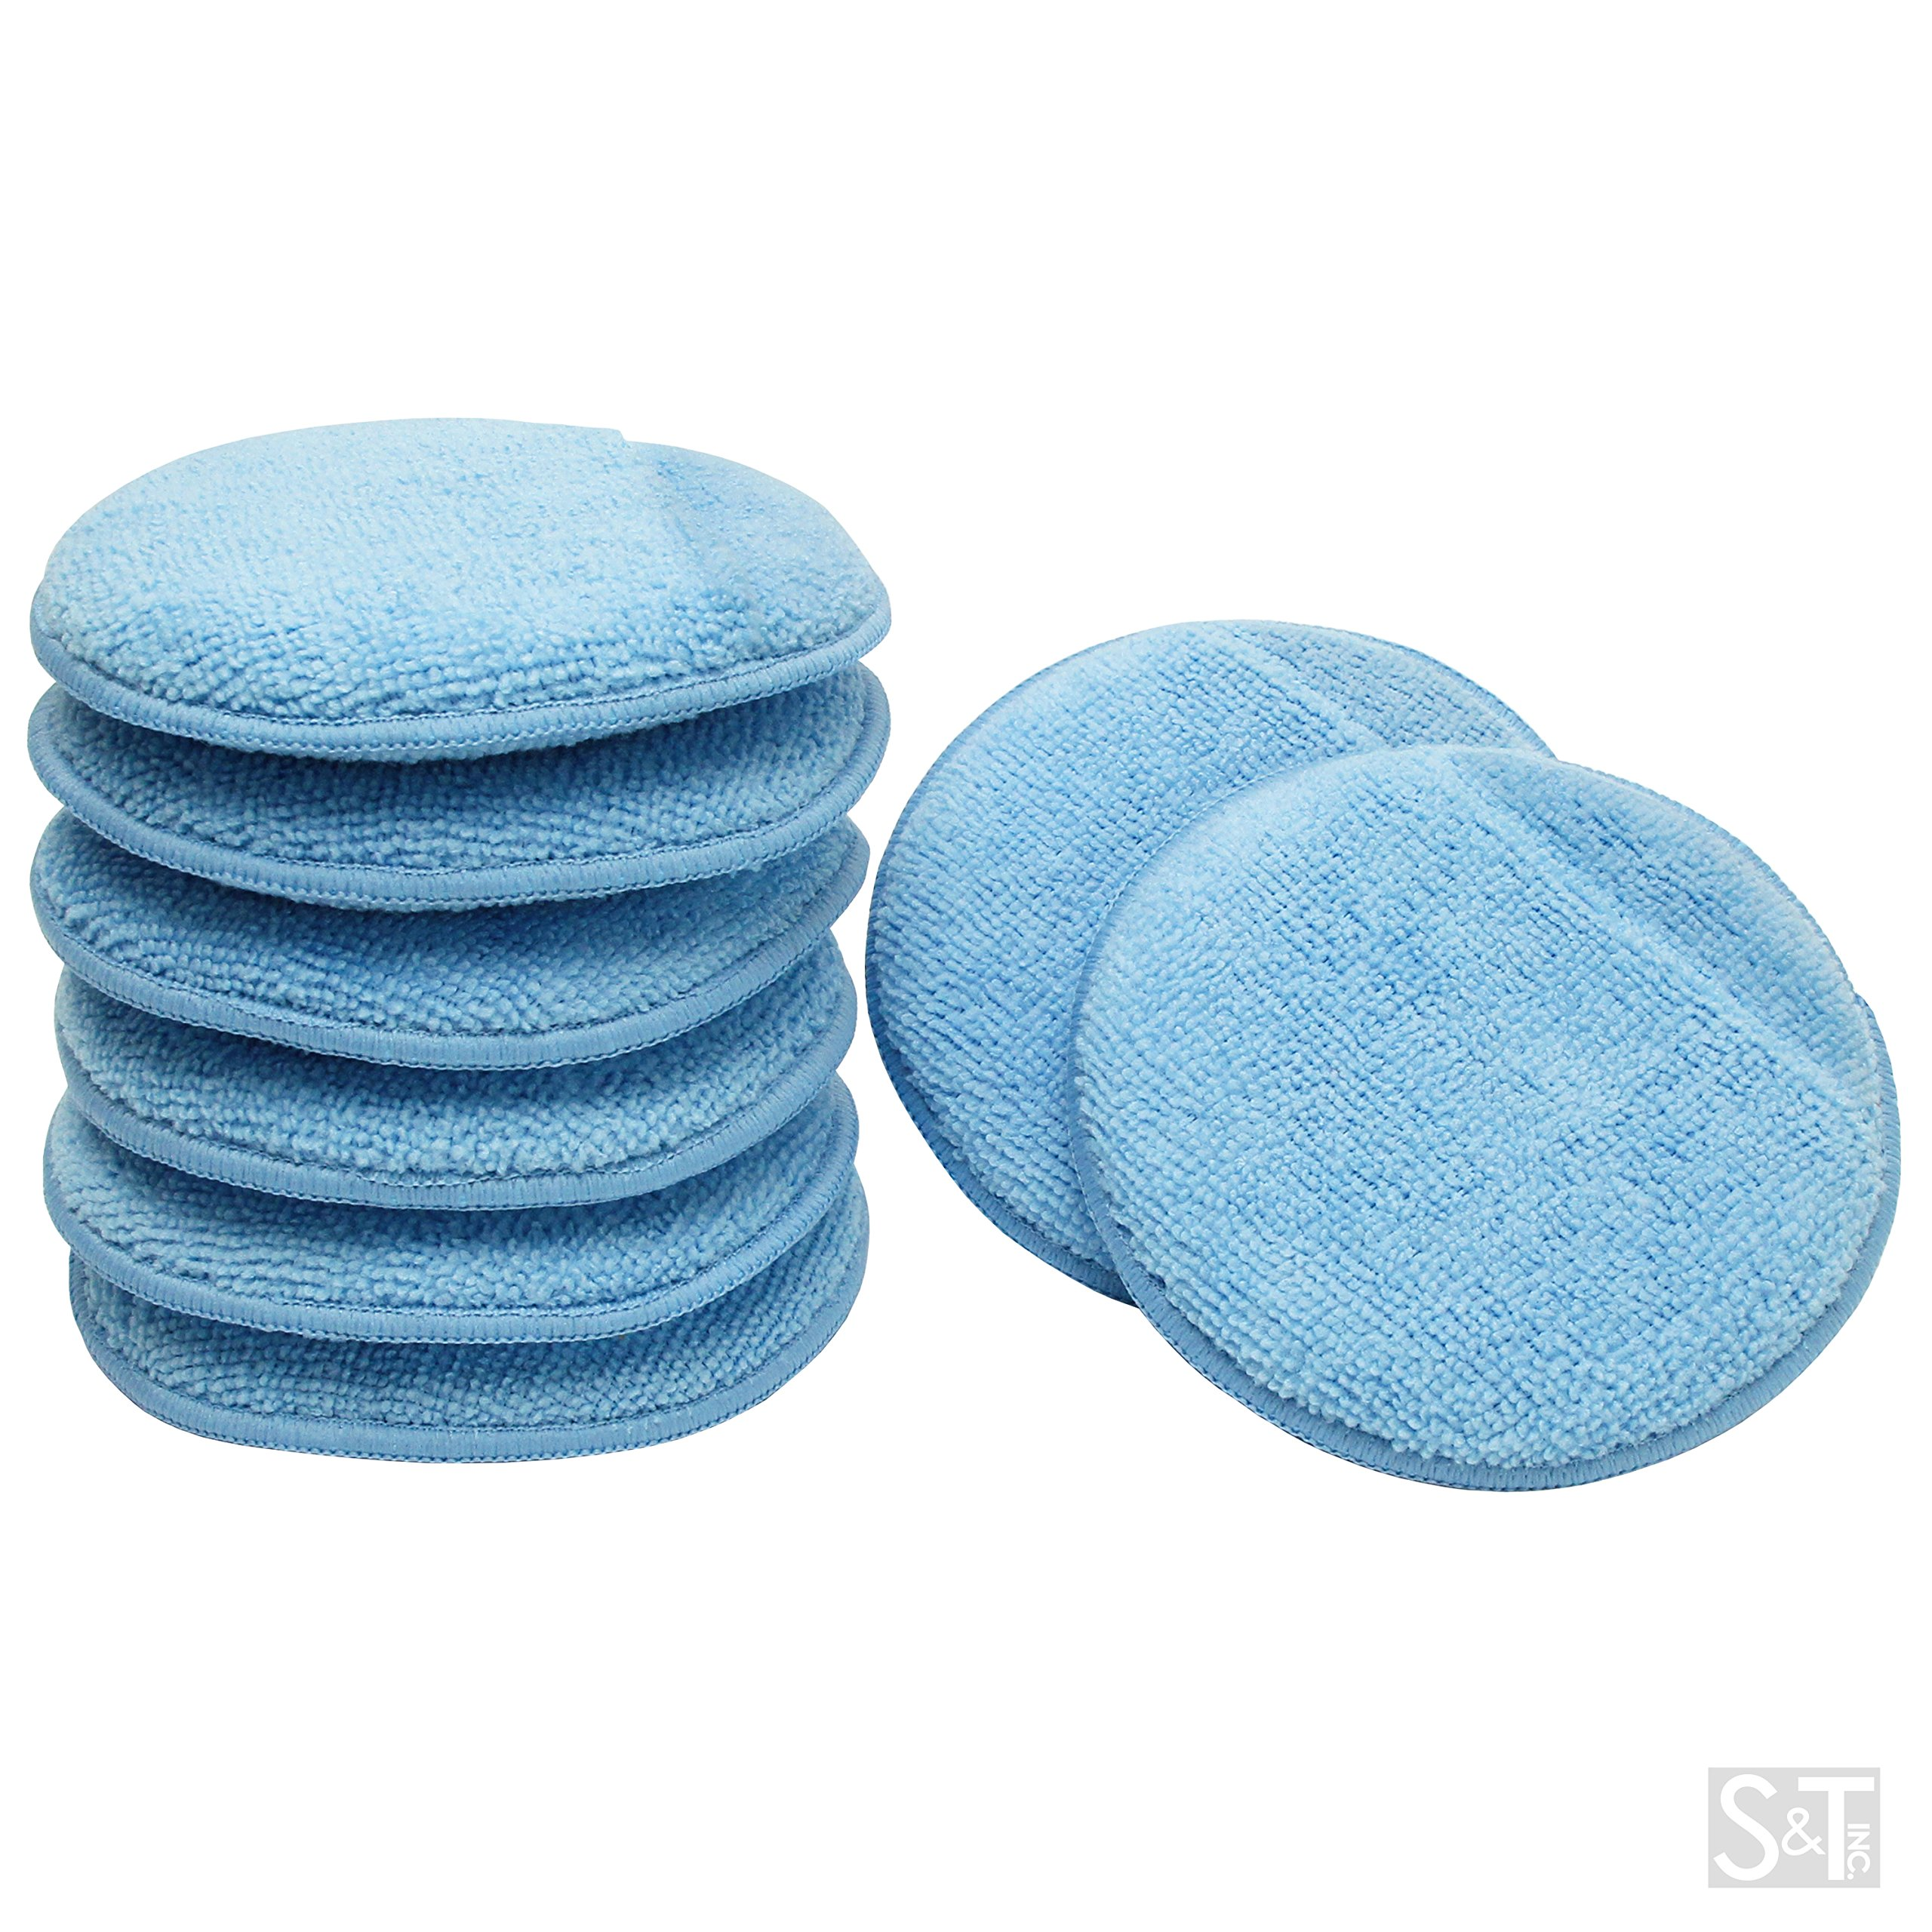 Galleon viking car care 426201 blue 8 microfiber applicator pads with finger pockets 8 pack